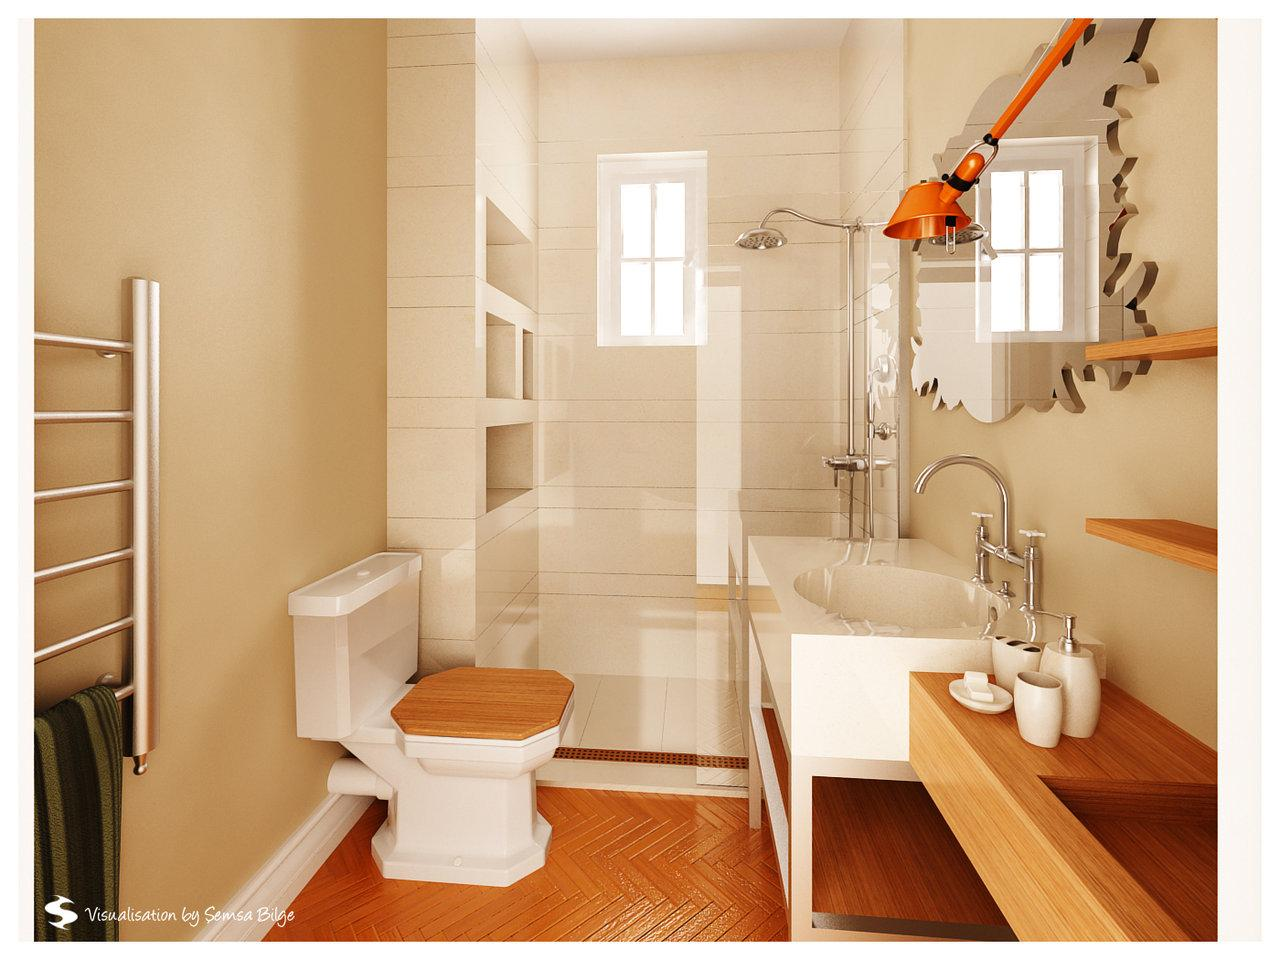 luxurious-small-wooden-bathroom